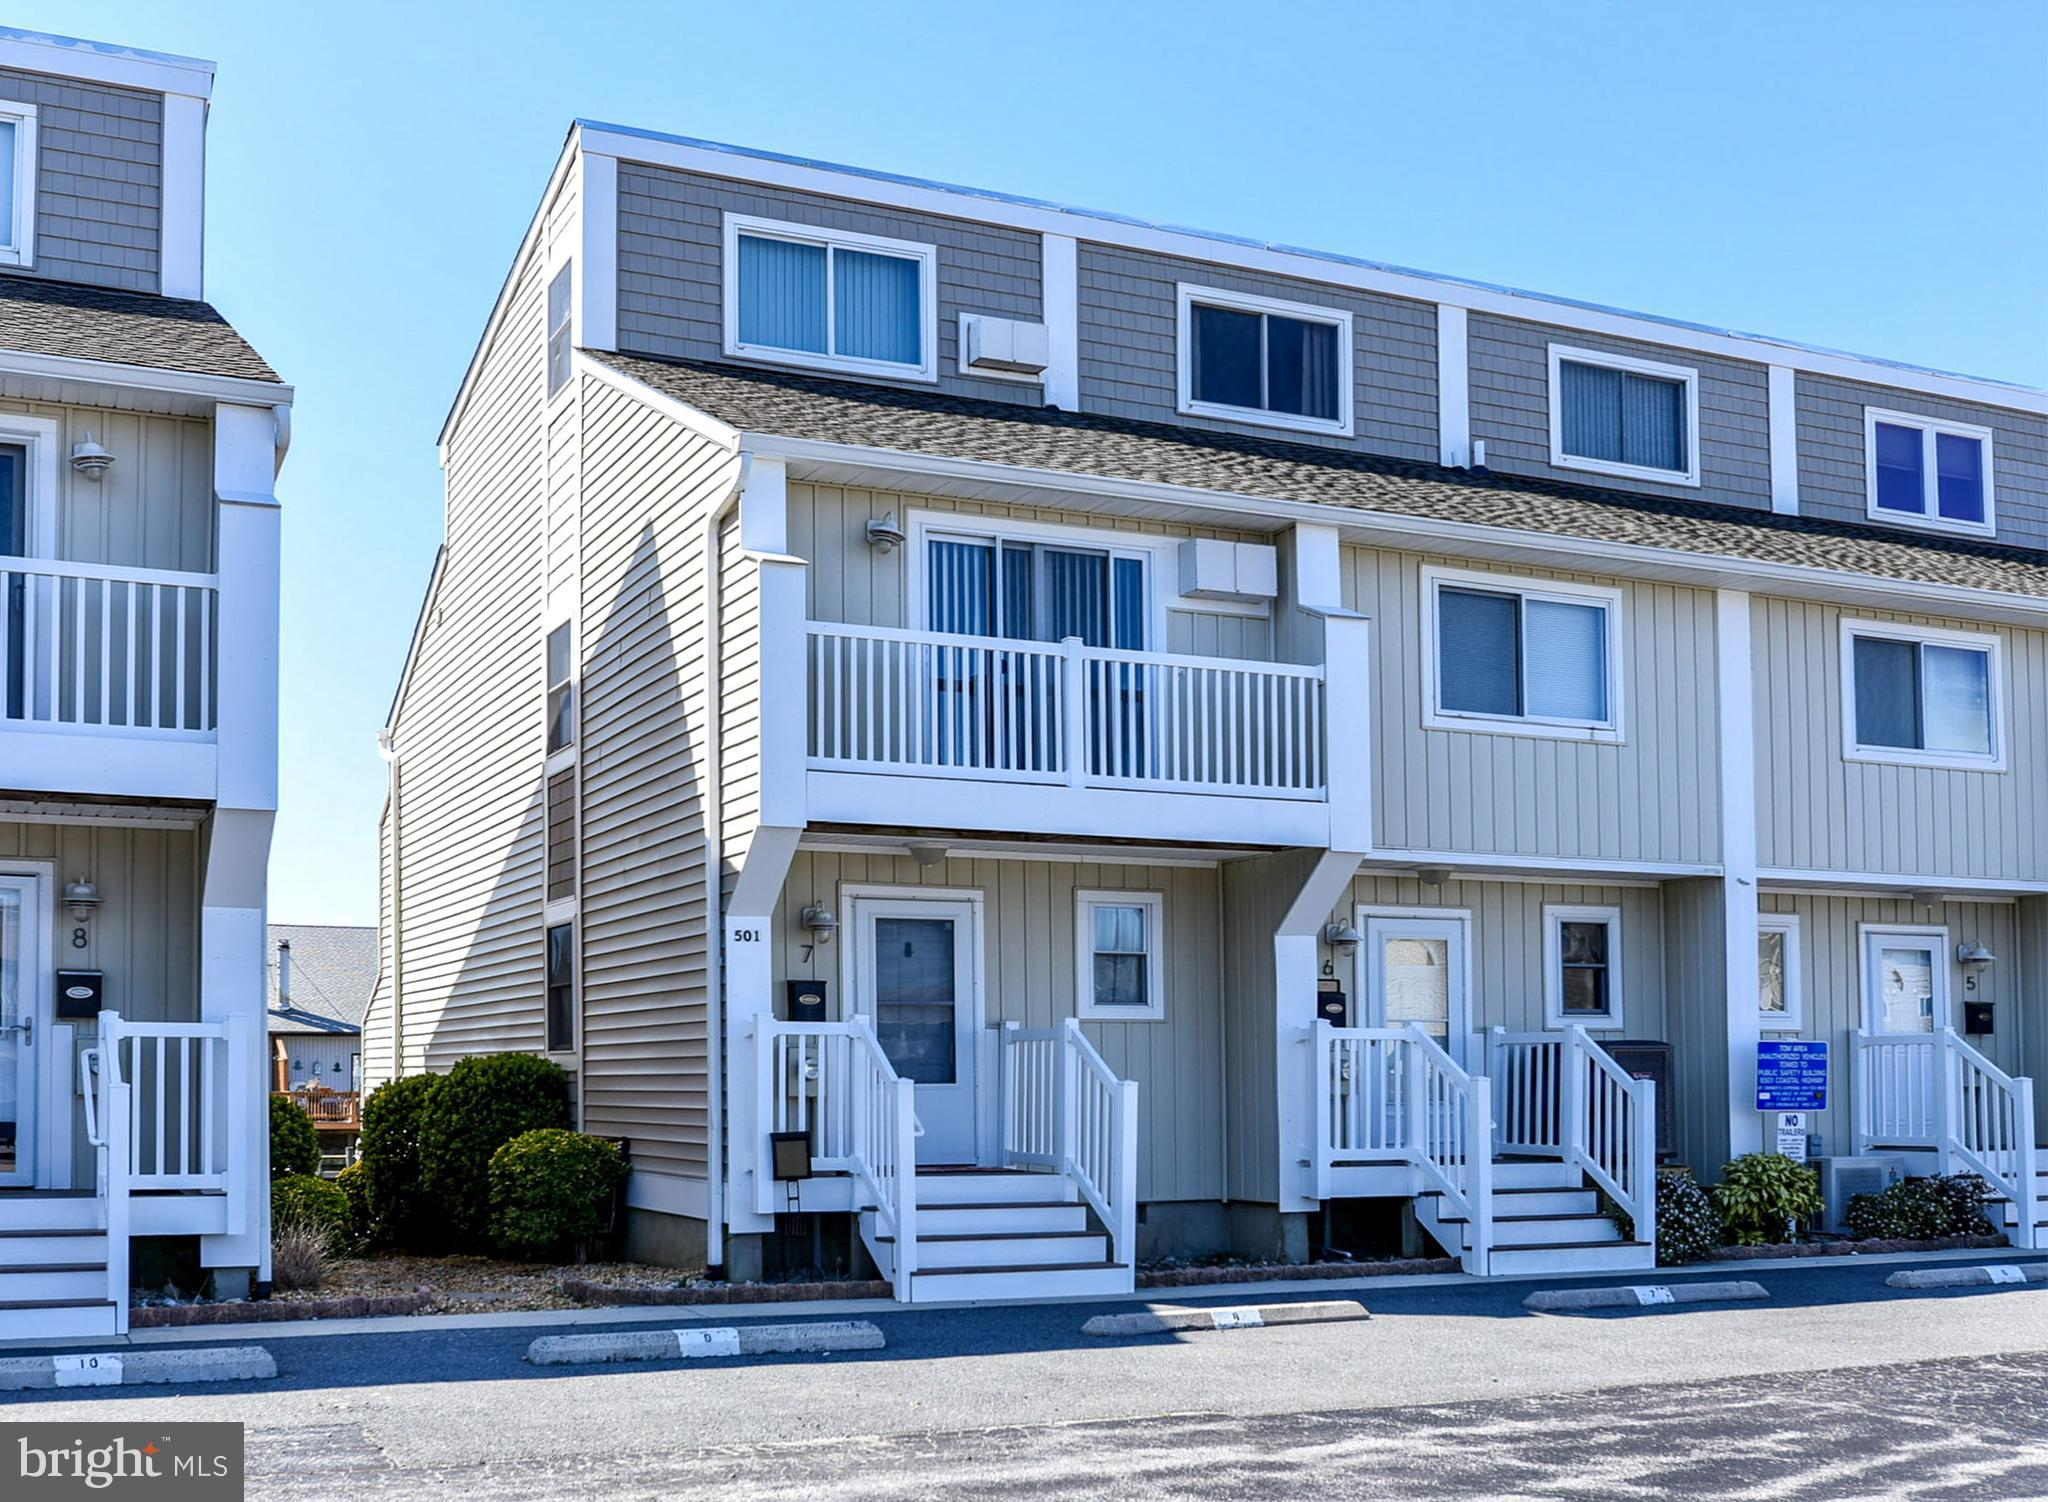 Waterfront, Southern Exposure, Nice 3 Bedroom, 2.5 Bath with Boat Slip, Pool, Private Rear Deck overlooking Canal, Community Boat Ramp, Located Bayside 32nd Street Area,  Close to Boardwalk, Jolly Roger's, Excellent Rental, Buyer Must Honor Rentals